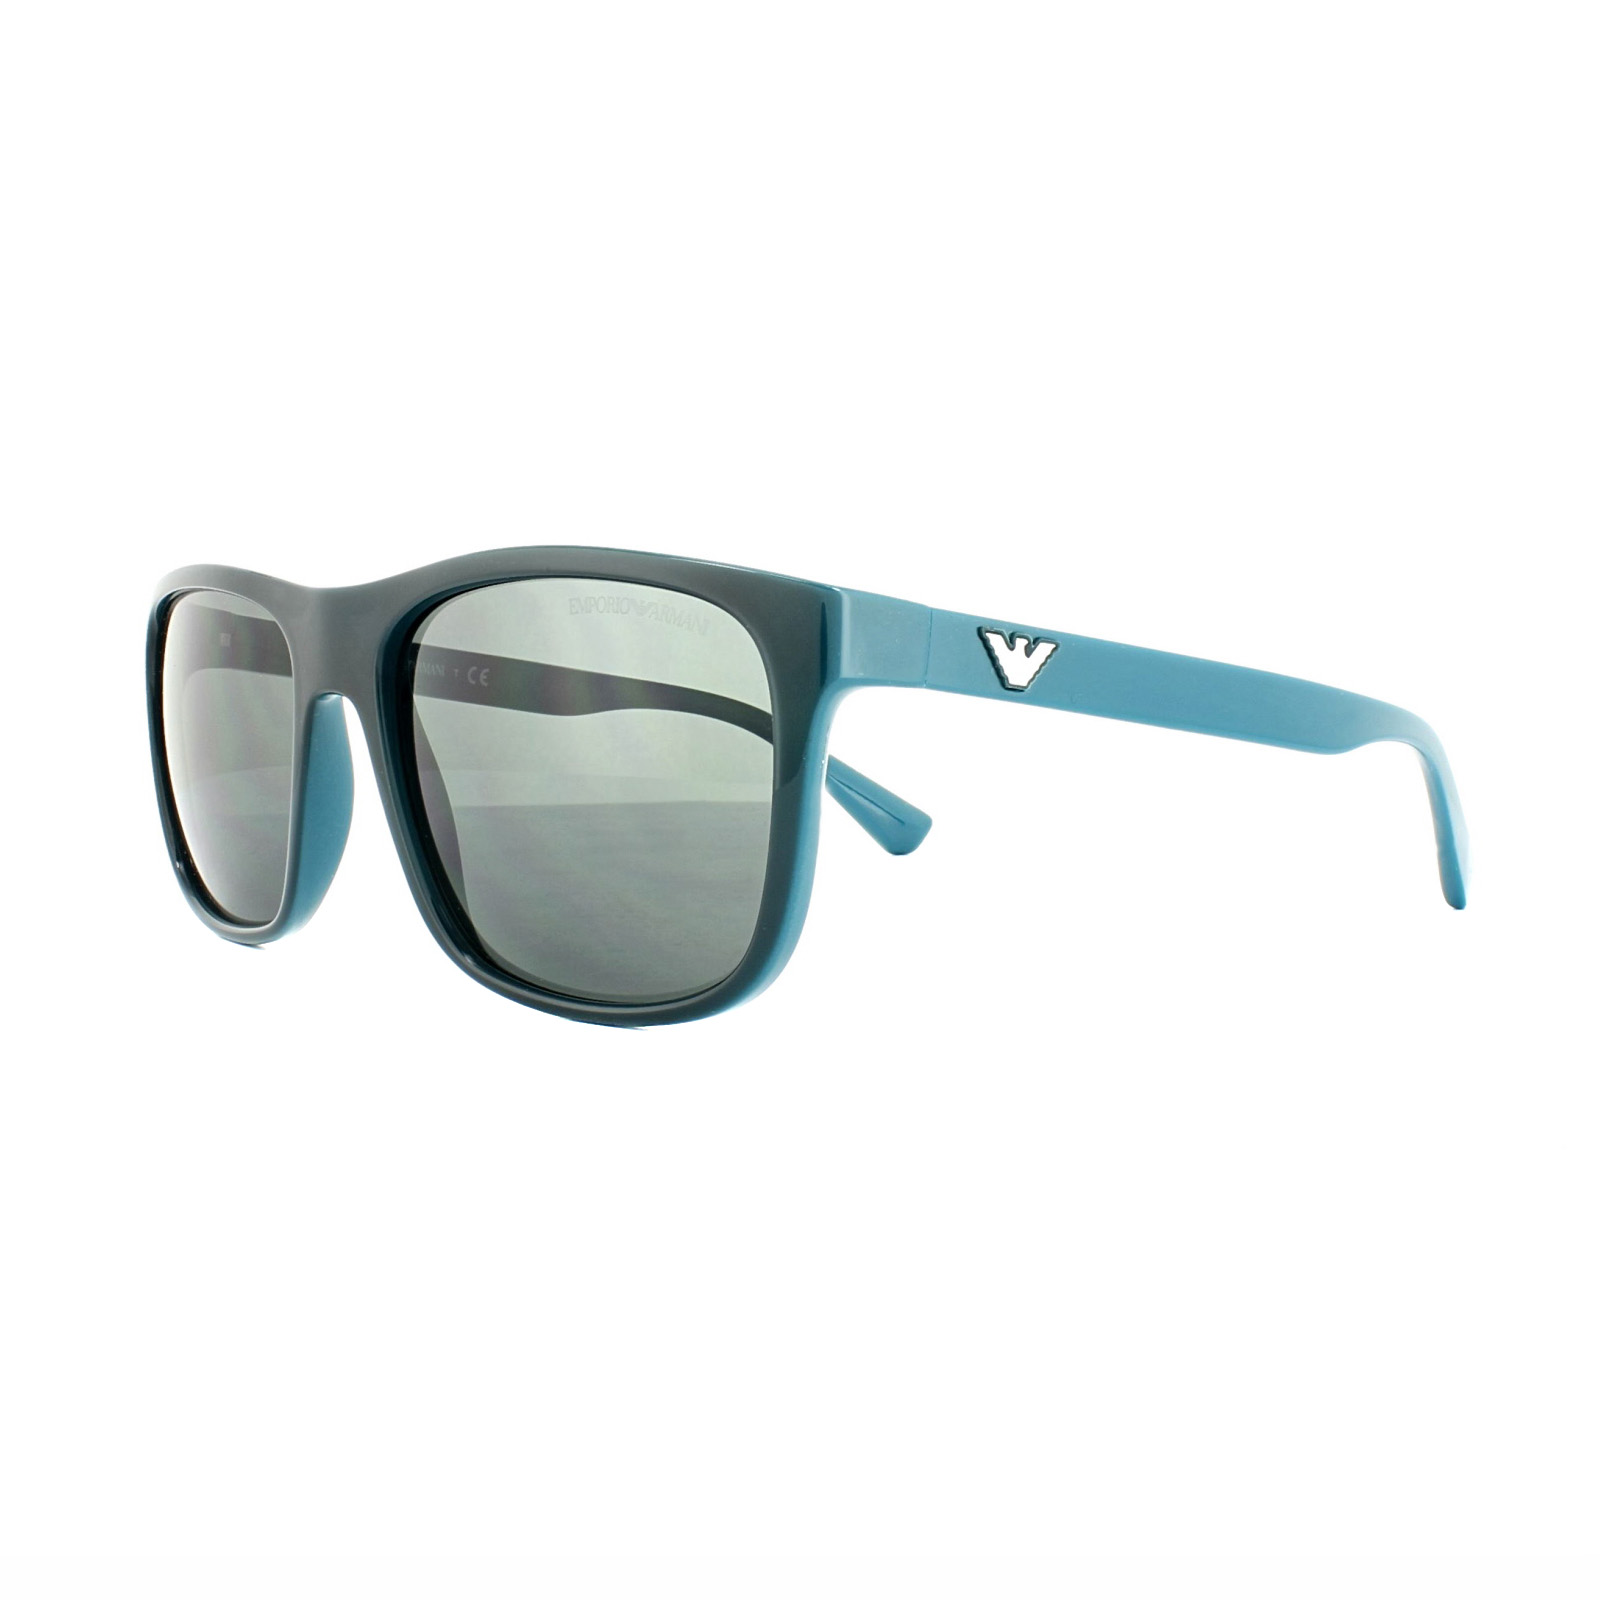 c82c723f9fbb Sentinel Emporio Armani Sunglasses 4085 5554 87 Top Green on Petroleum Grey